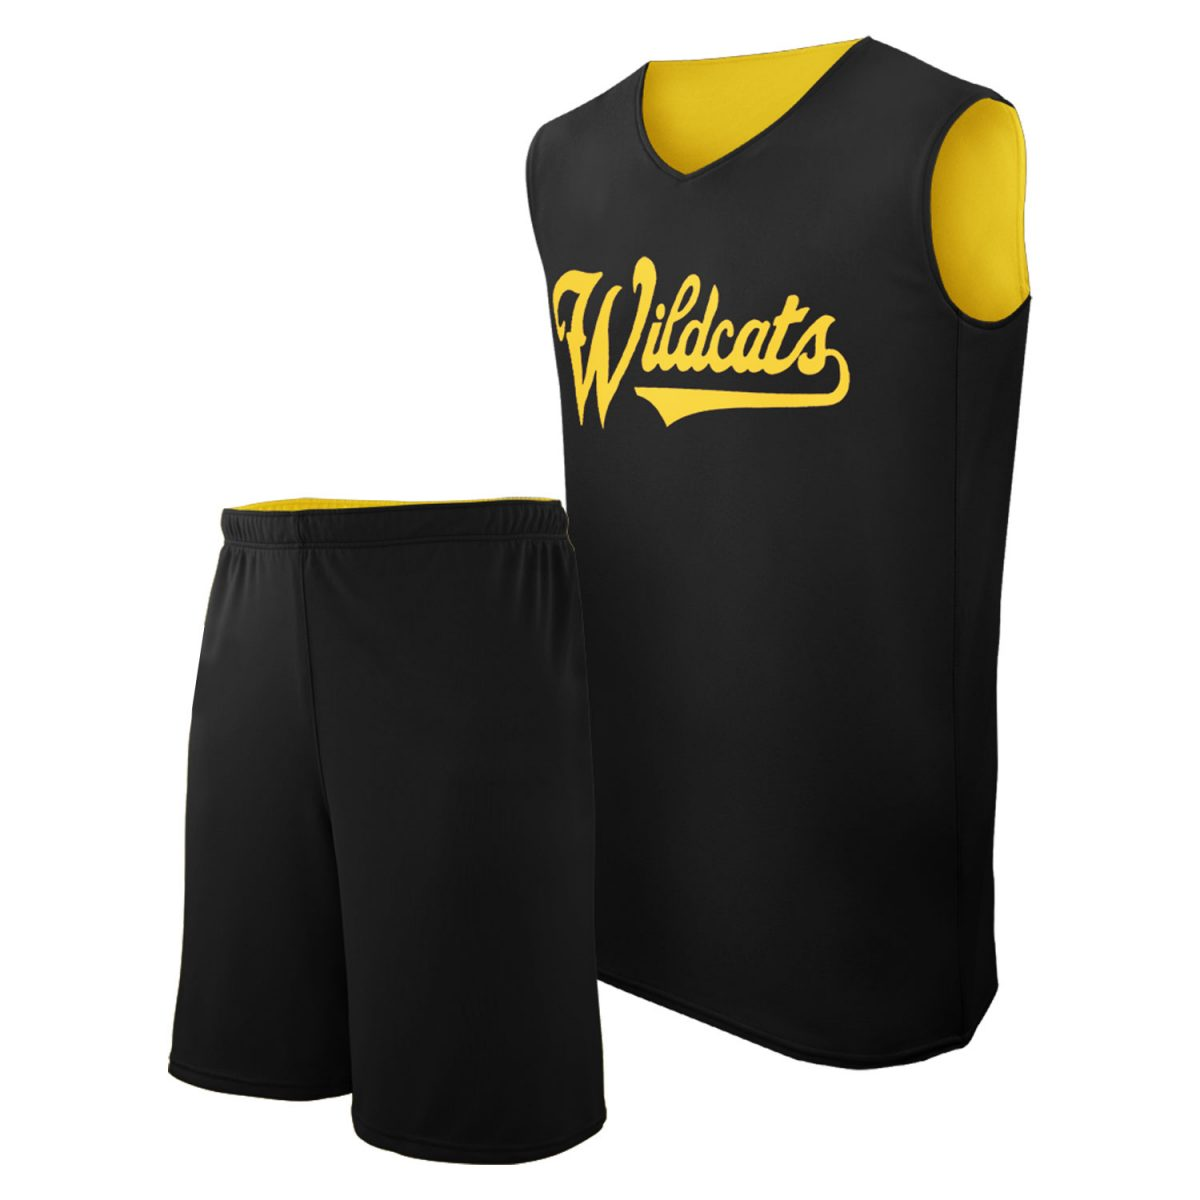 Boys Basketball Uniforms Manufacturers in Angola